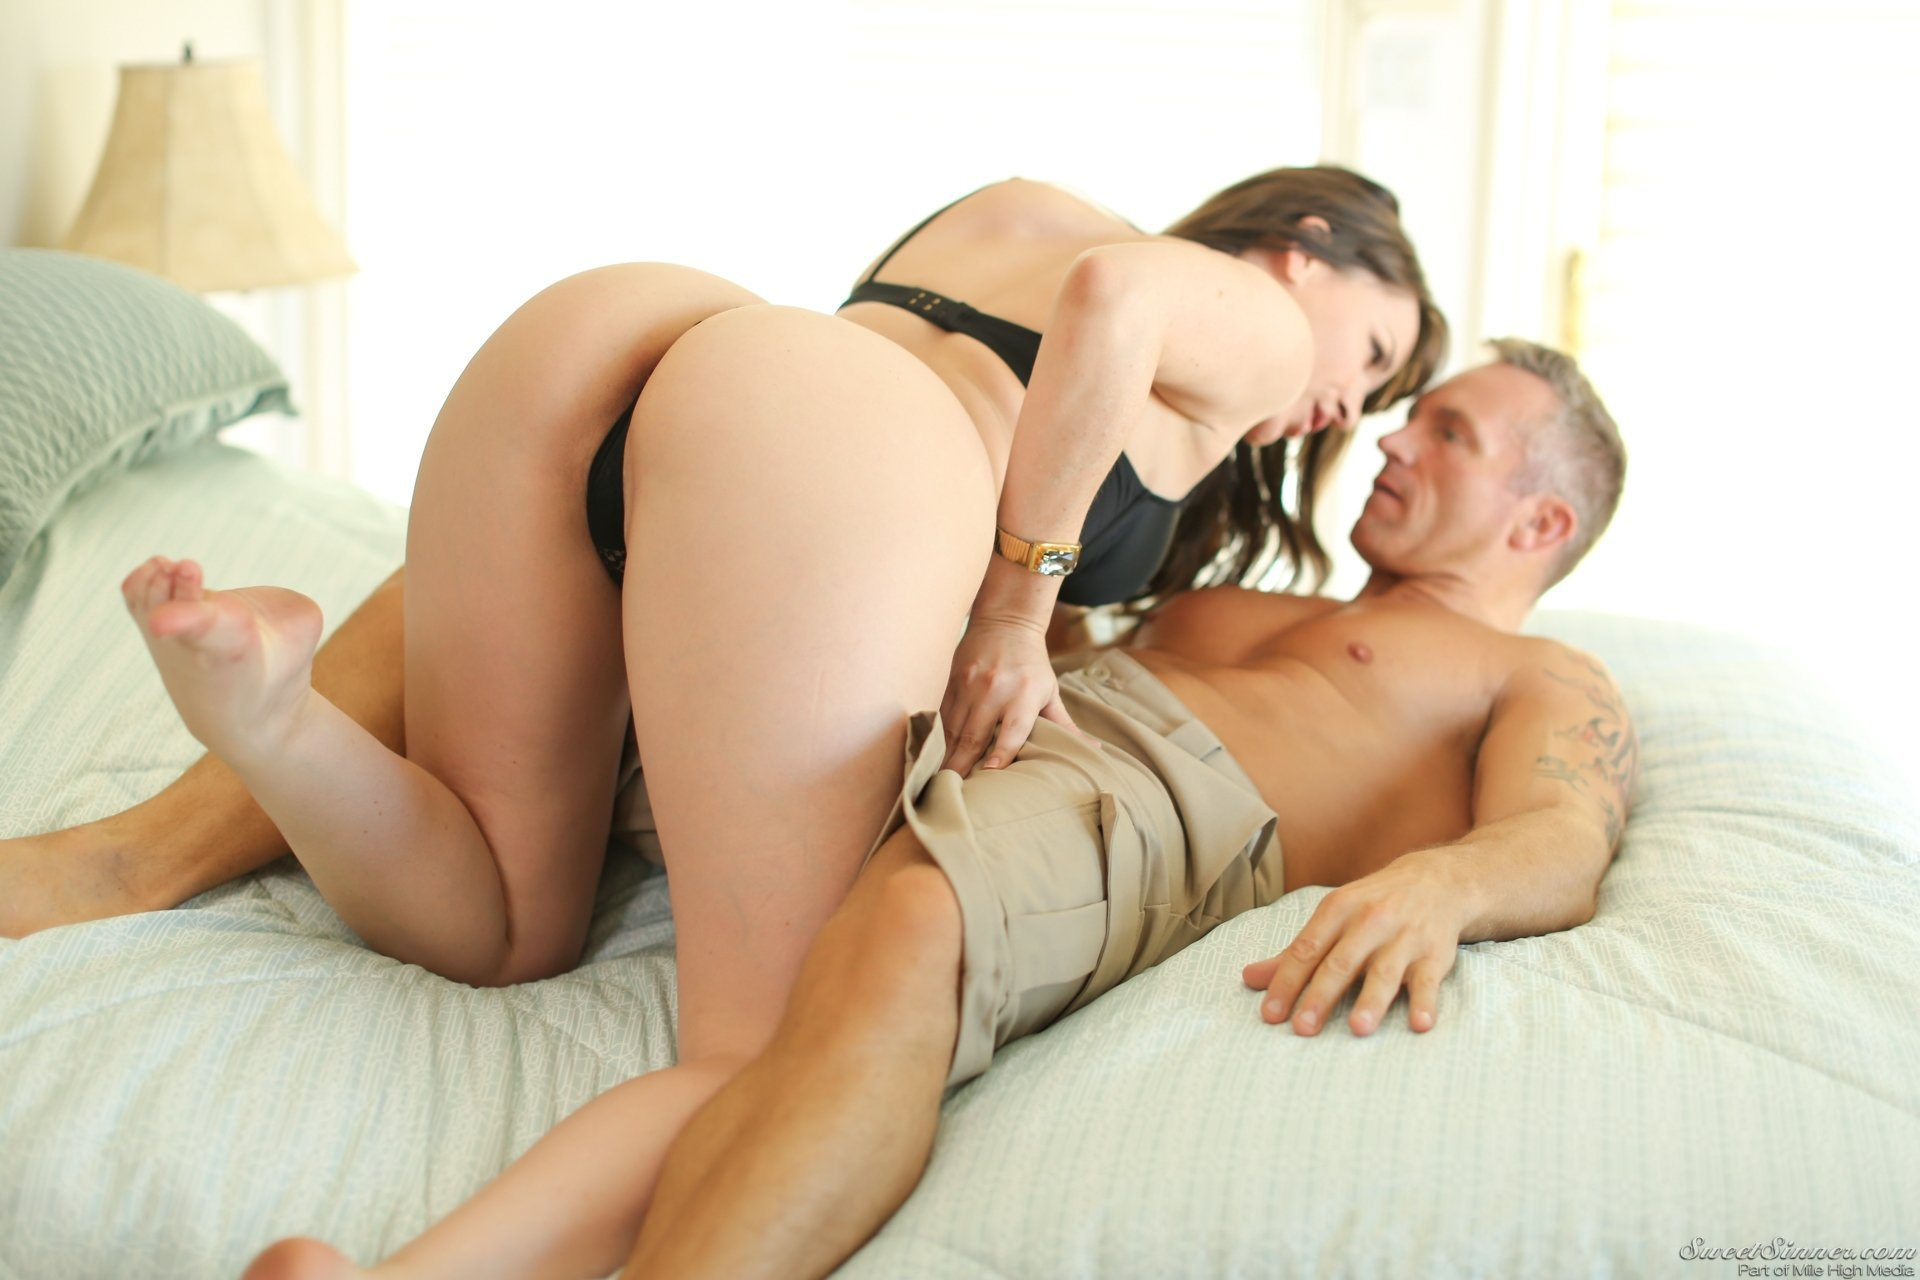 free mature interracial porn videos